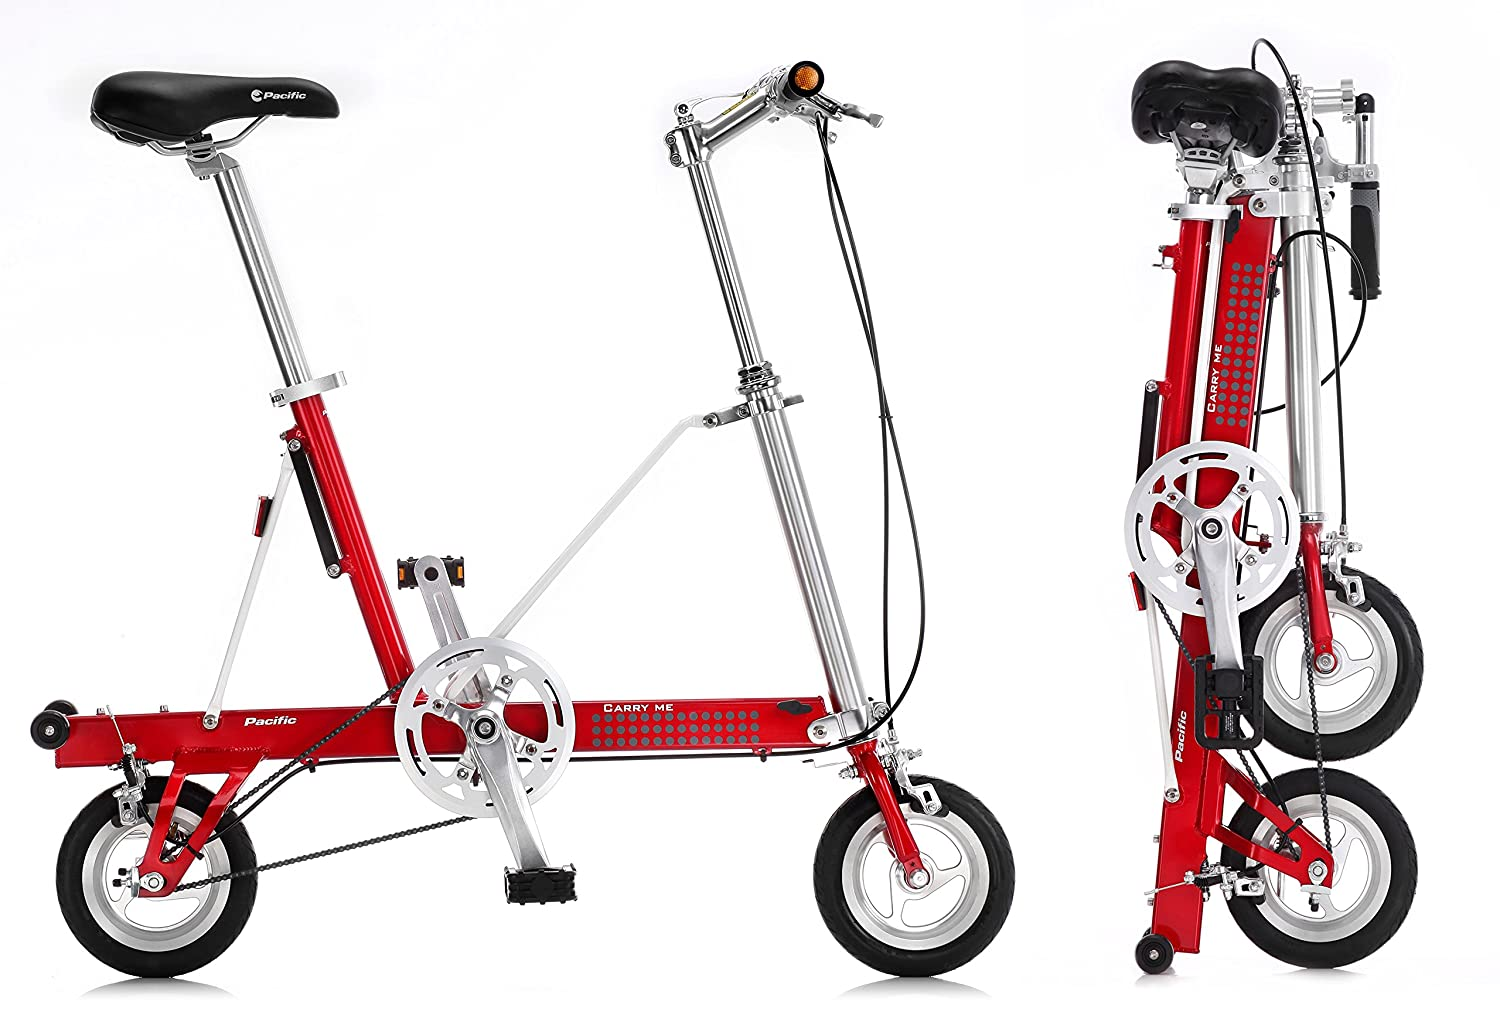 Bicicleta plegable CarryMe DS (Dual Speed) roja: Amazon.es: Deportes y aire libre